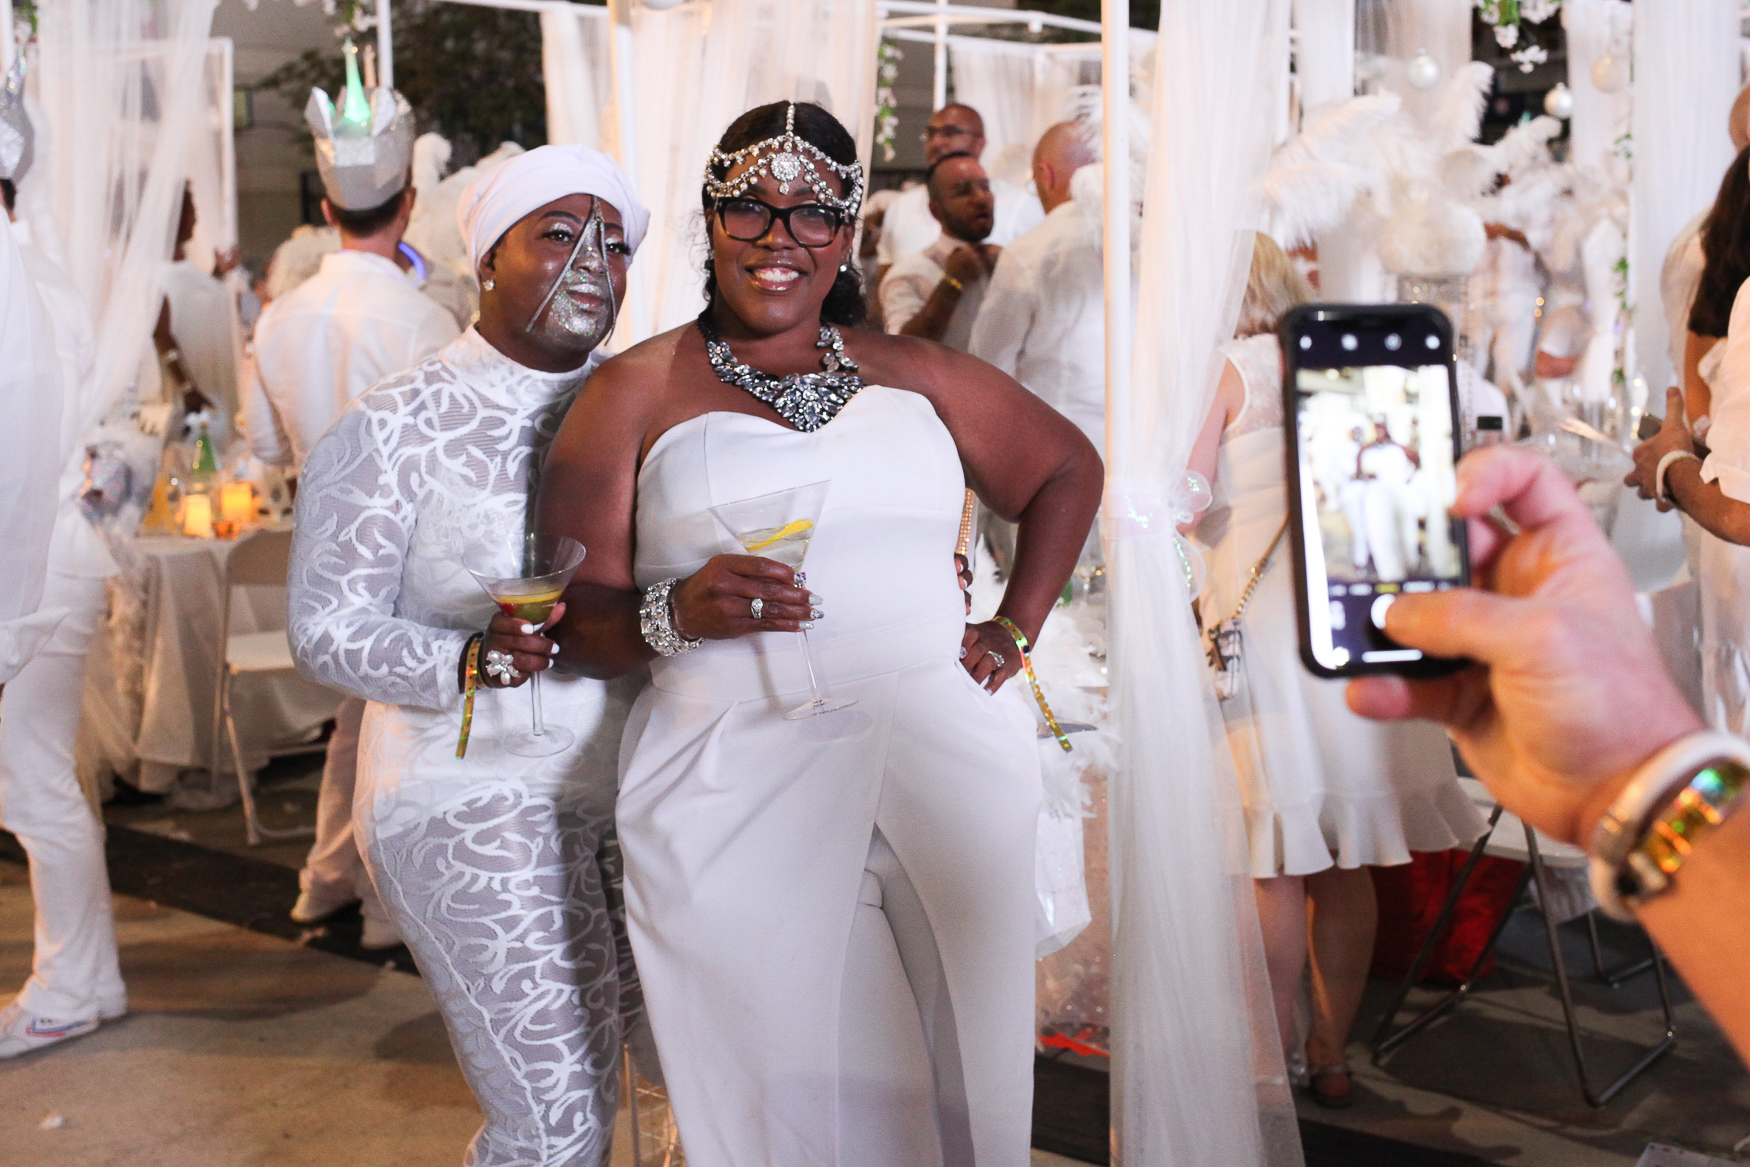 These off-the-wall looks at Diner en Blanc were totally captivating - especially that lace jumpsuit.  (Image: Amanda Andrade-Rhoades/DC Refined)